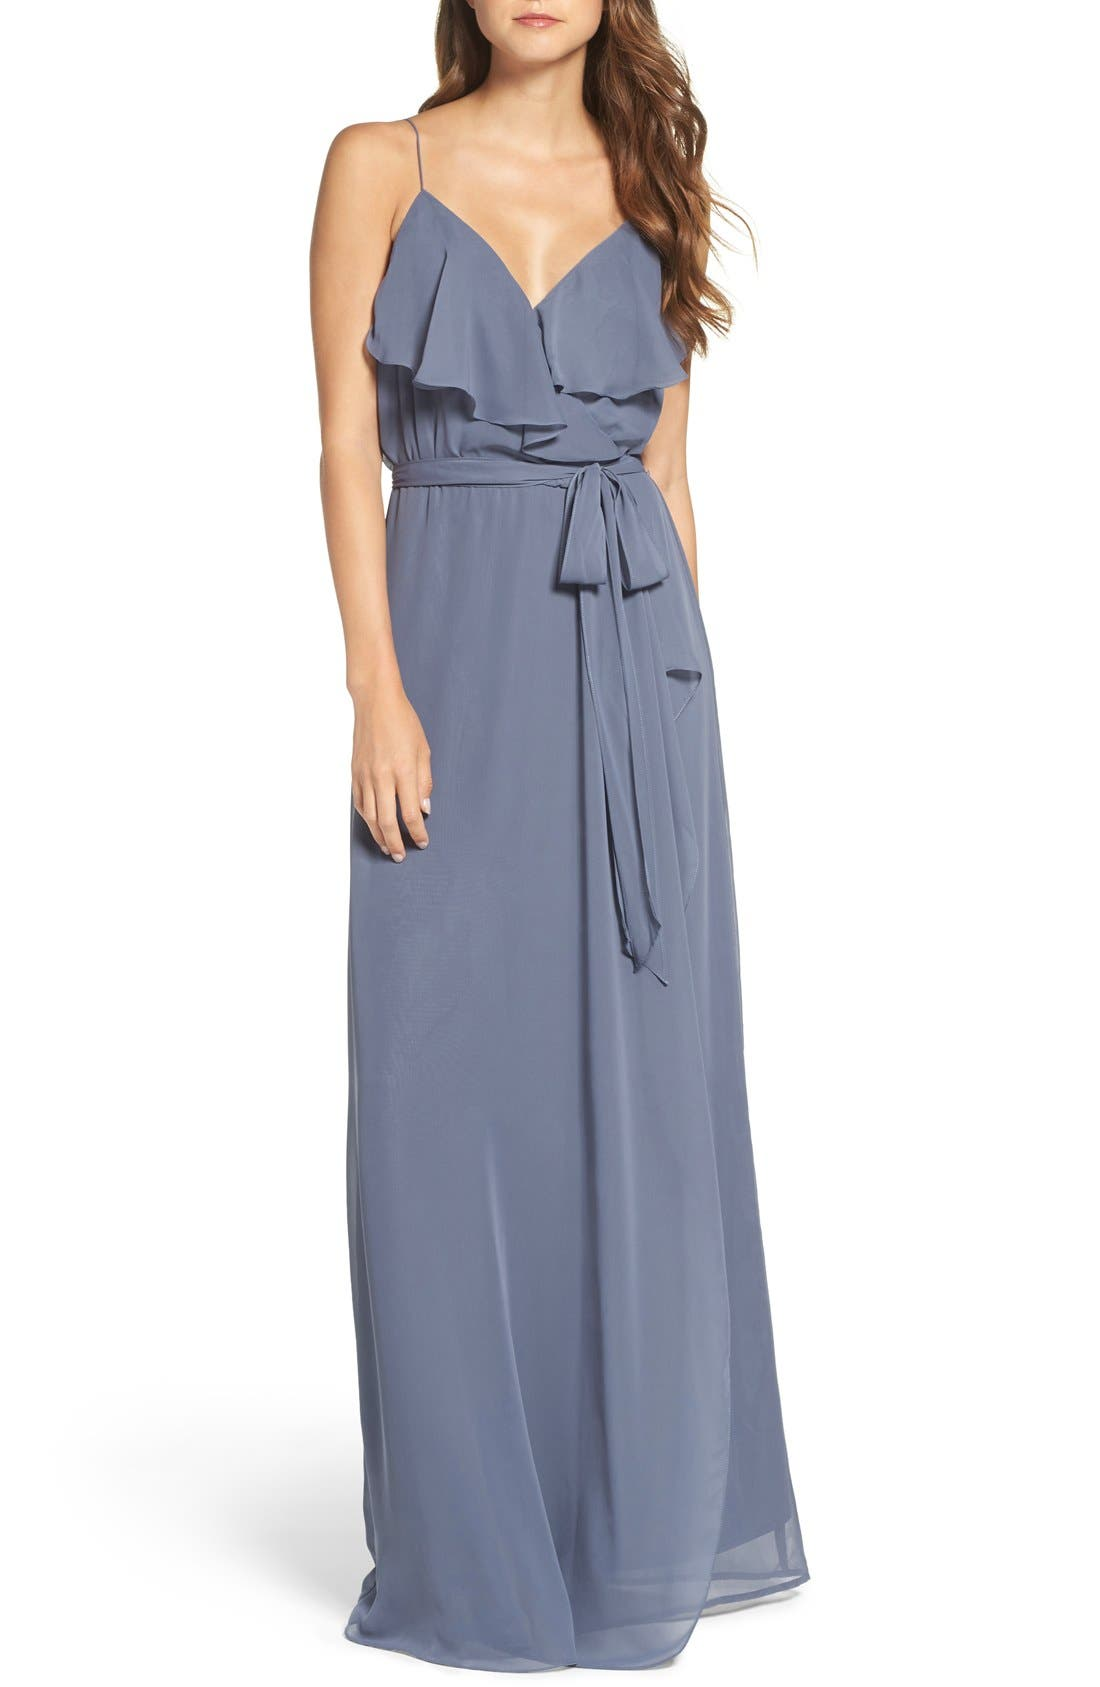 'Drew' Ruffle Front Chiffon Gown,                             Main thumbnail 1, color,                             Blue Steel